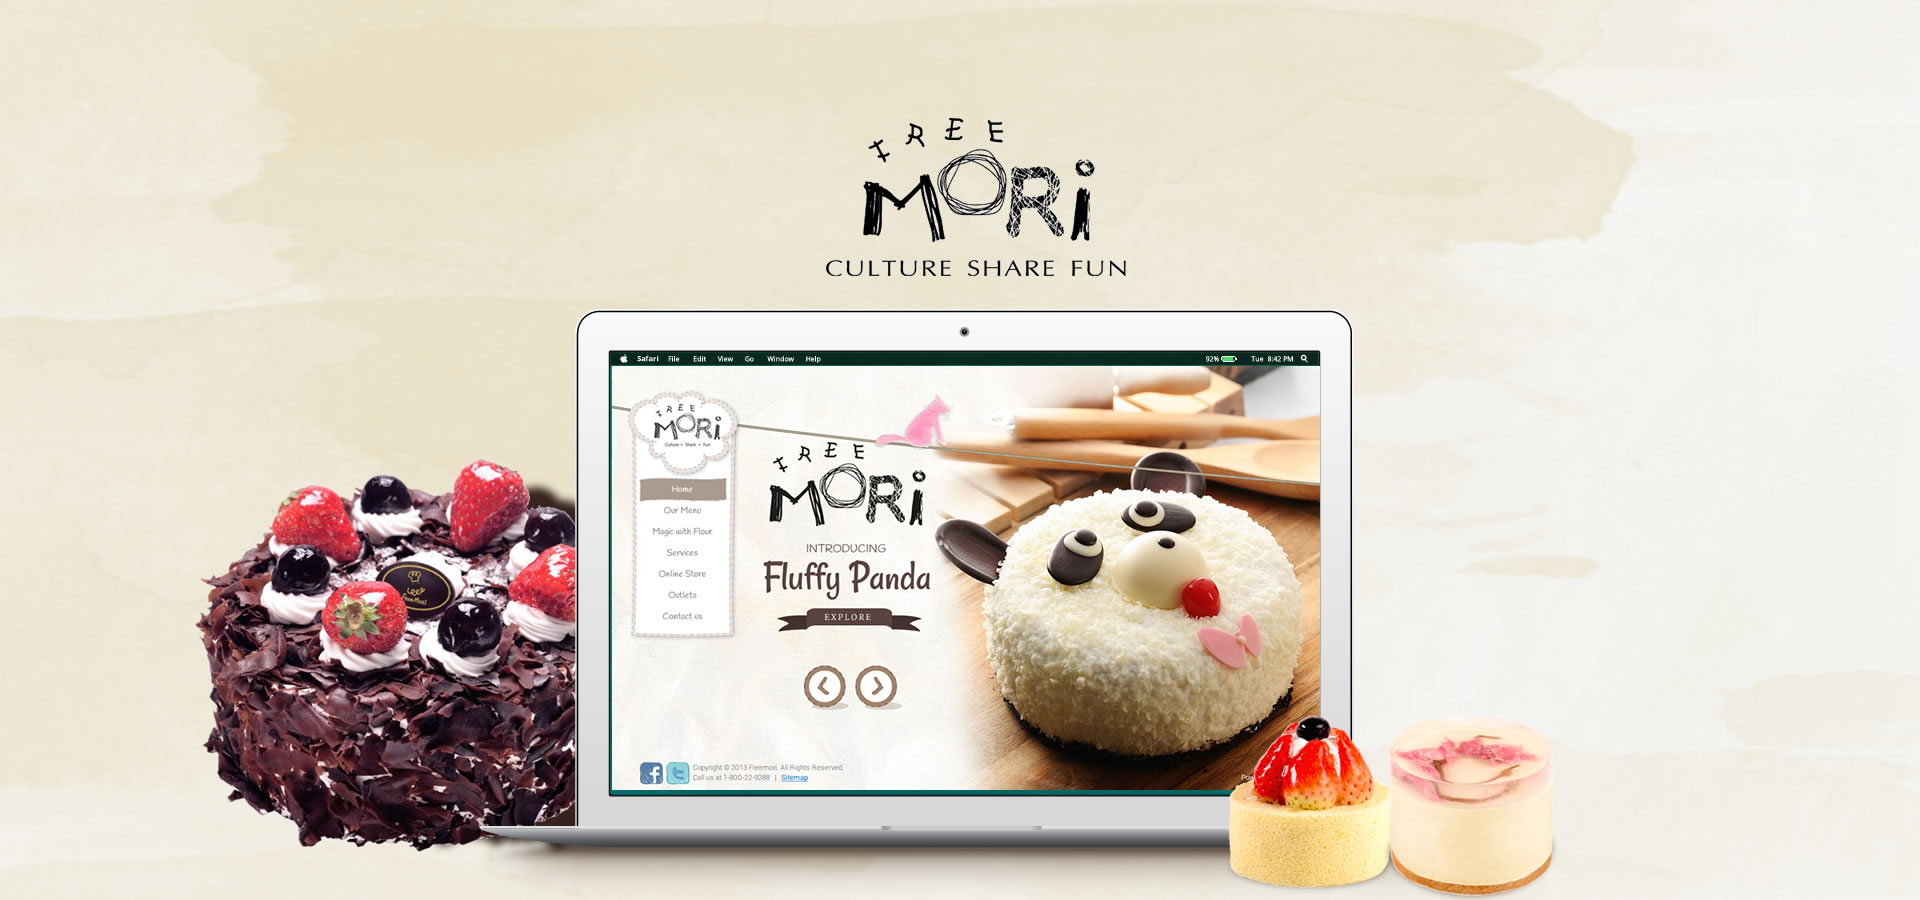 bakery website design for Freemori Malaysia